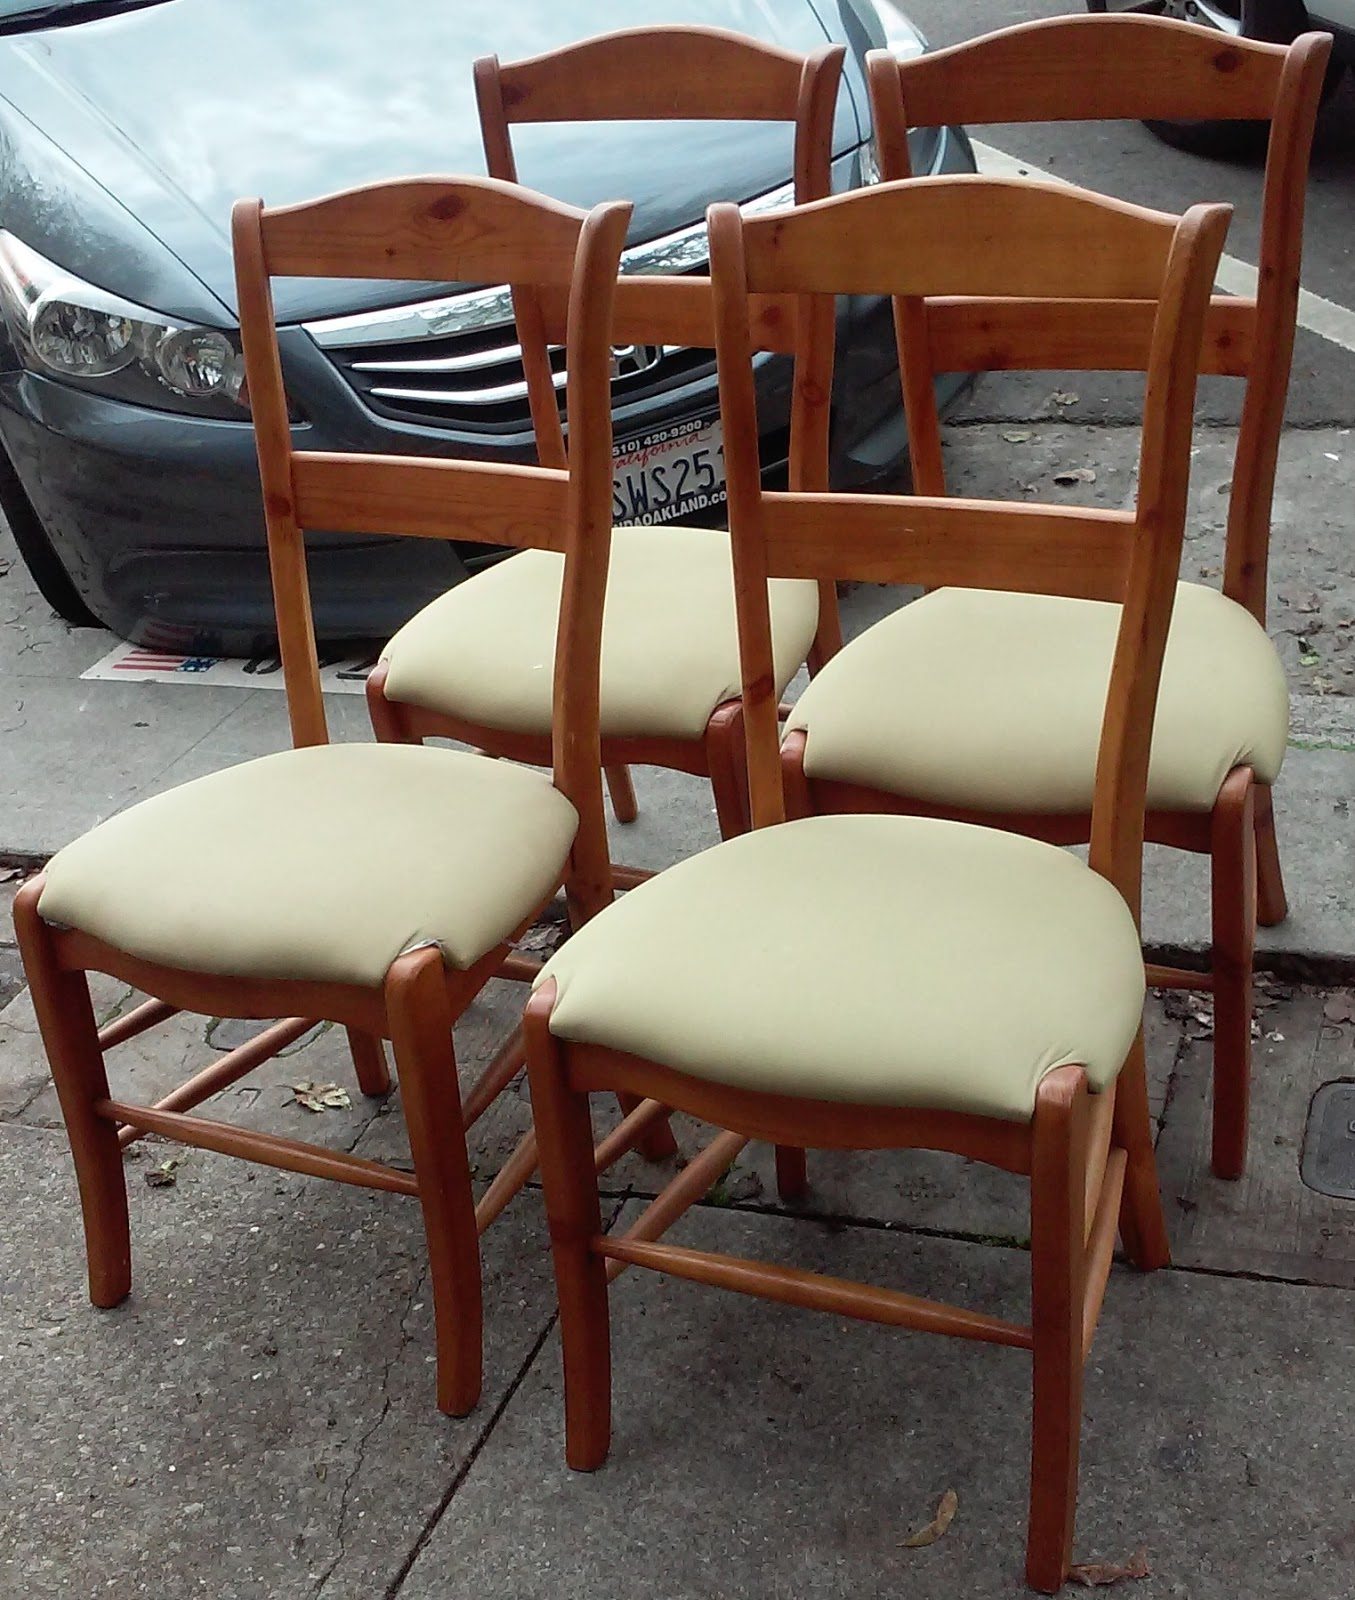 UHURU FURNITURE amp COLLECTIBLES SOLD 4 French Country Pine  : 021517oakwooddiningfchairs from uhurufurniture.blogspot.com size 1355 x 1600 jpeg 395kB